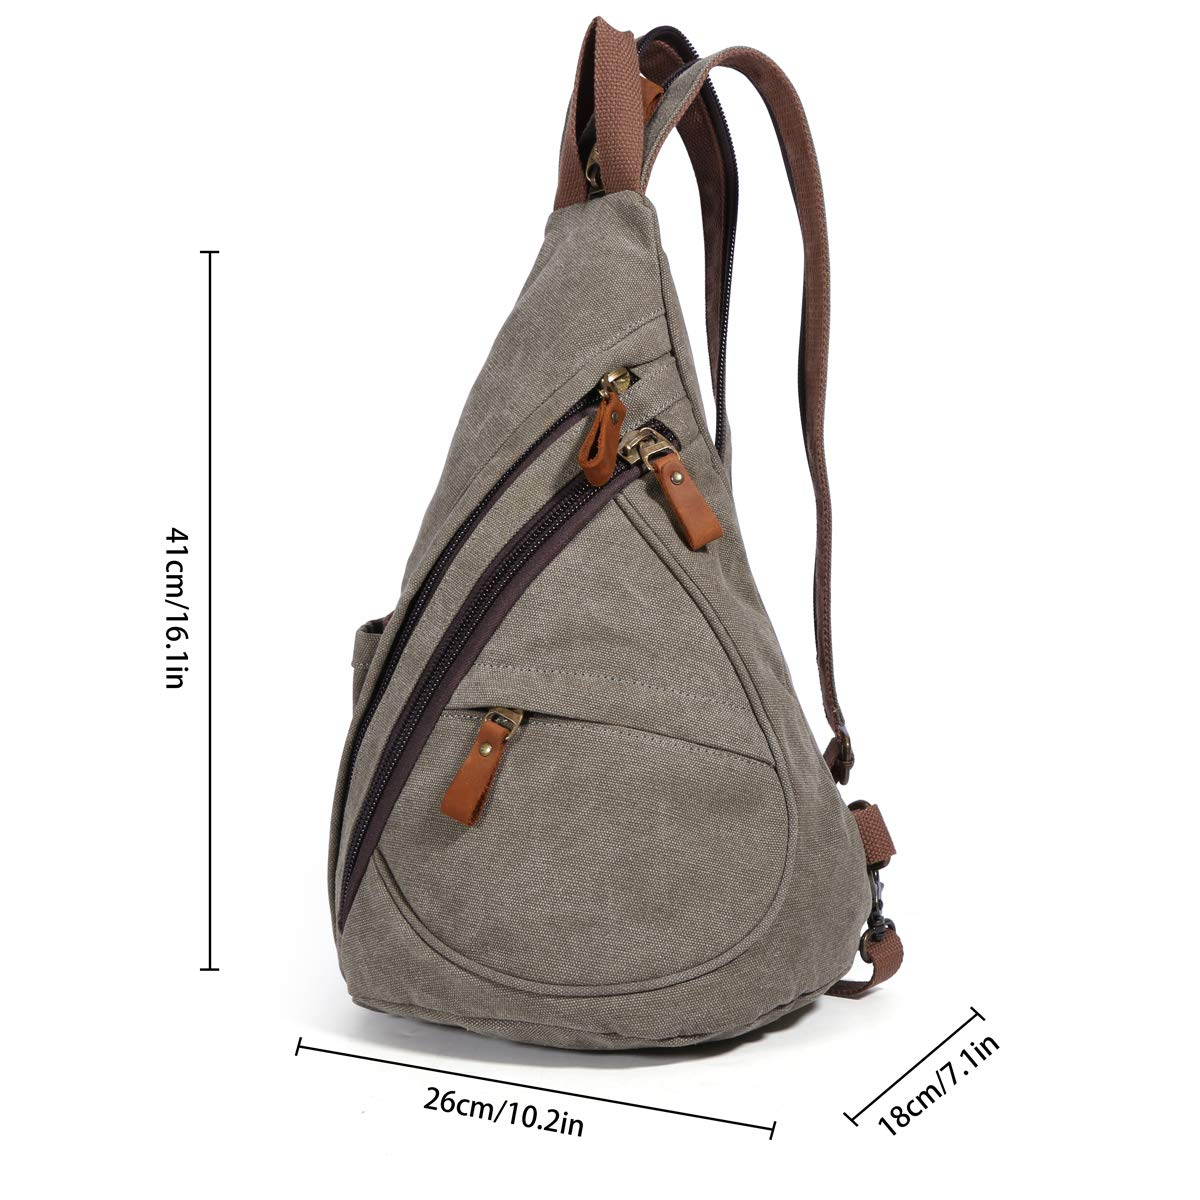 Canvas Sling Bag Small Crossbody Backpack Shoulder Casual Daypack Chest Bags Rucksack for Men Women Outdoor Cycling Hiking Travel 6881-Khaki